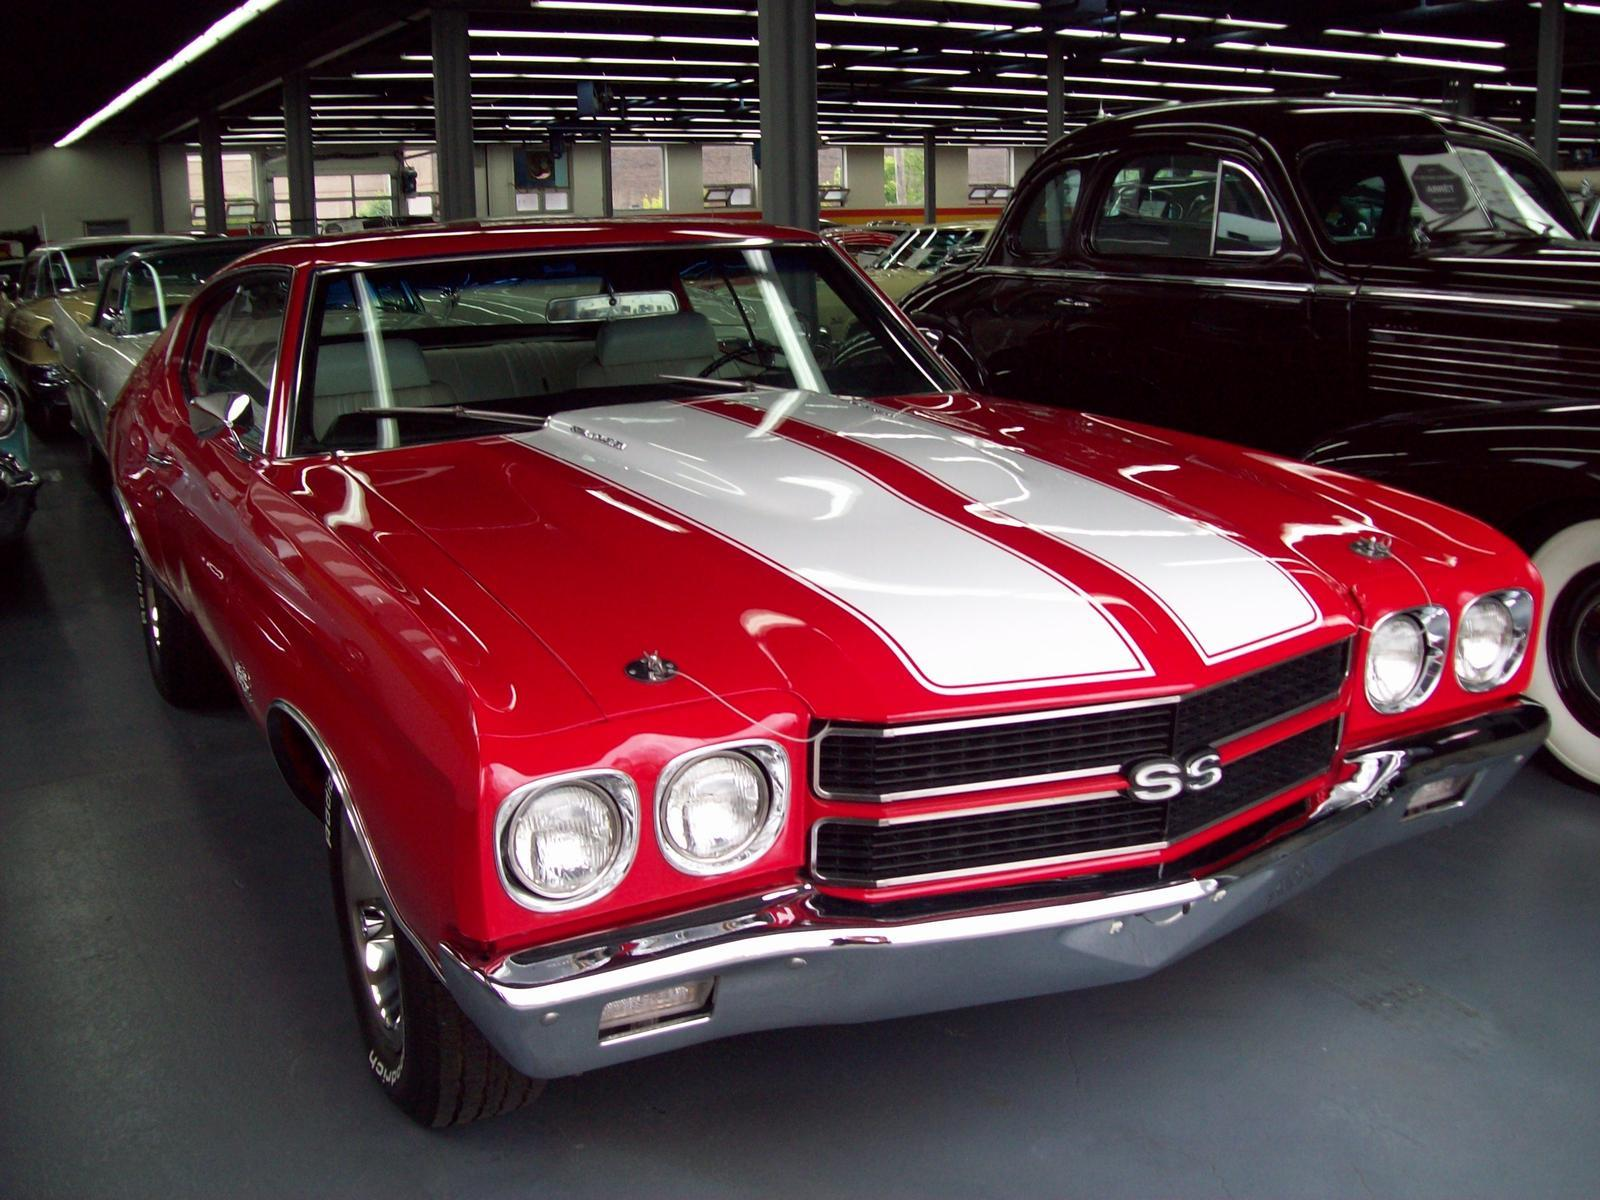 Used 1972 Chevrolet Chevelle SS For Sale  CarGurus